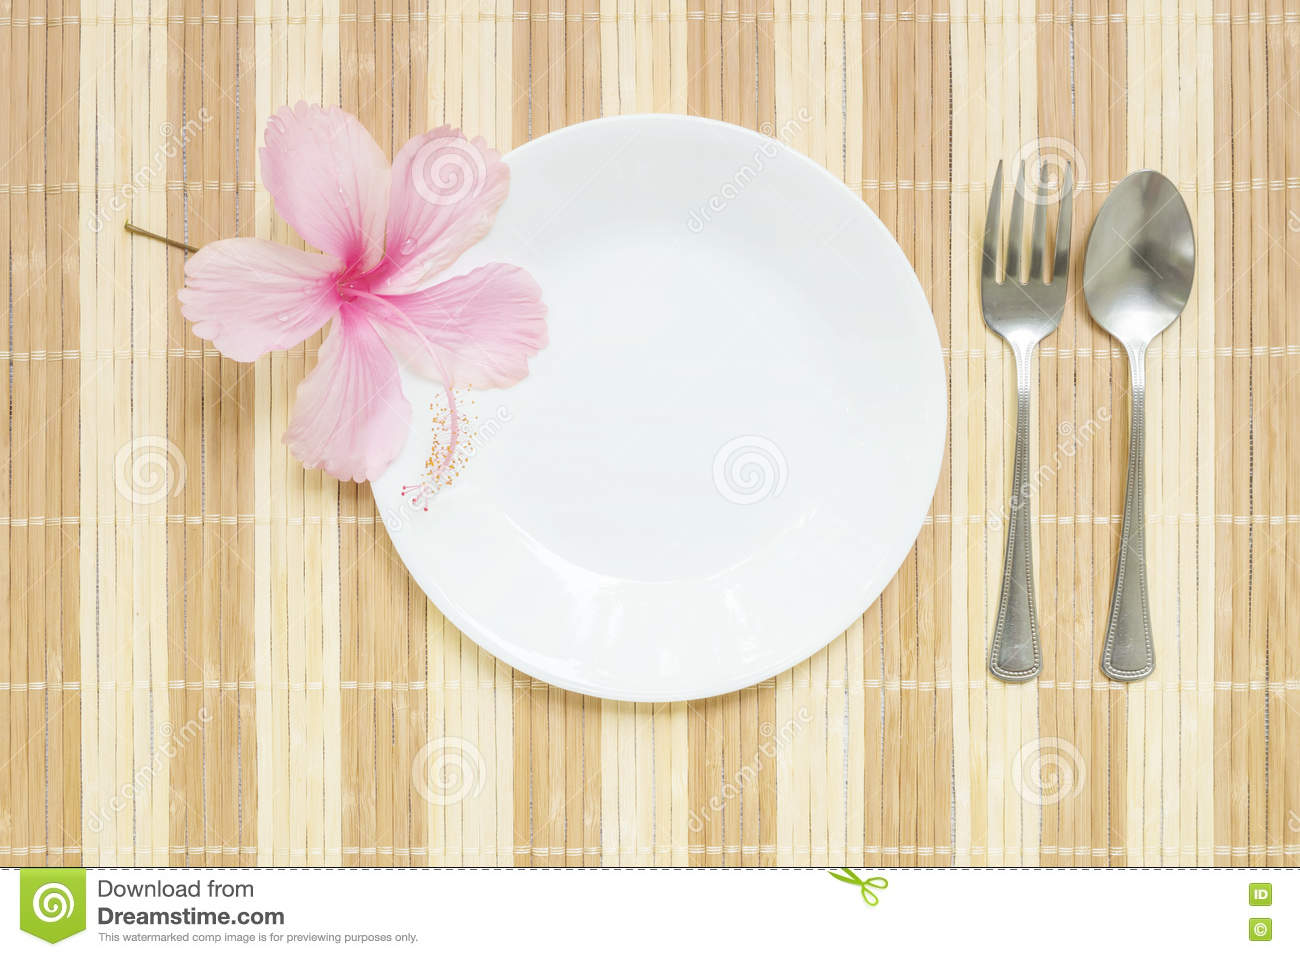 Dinner table background - Closeup White Ceramic Dish With Stainless Fork And Spoon With Pink Flower On Wood Mat Textured